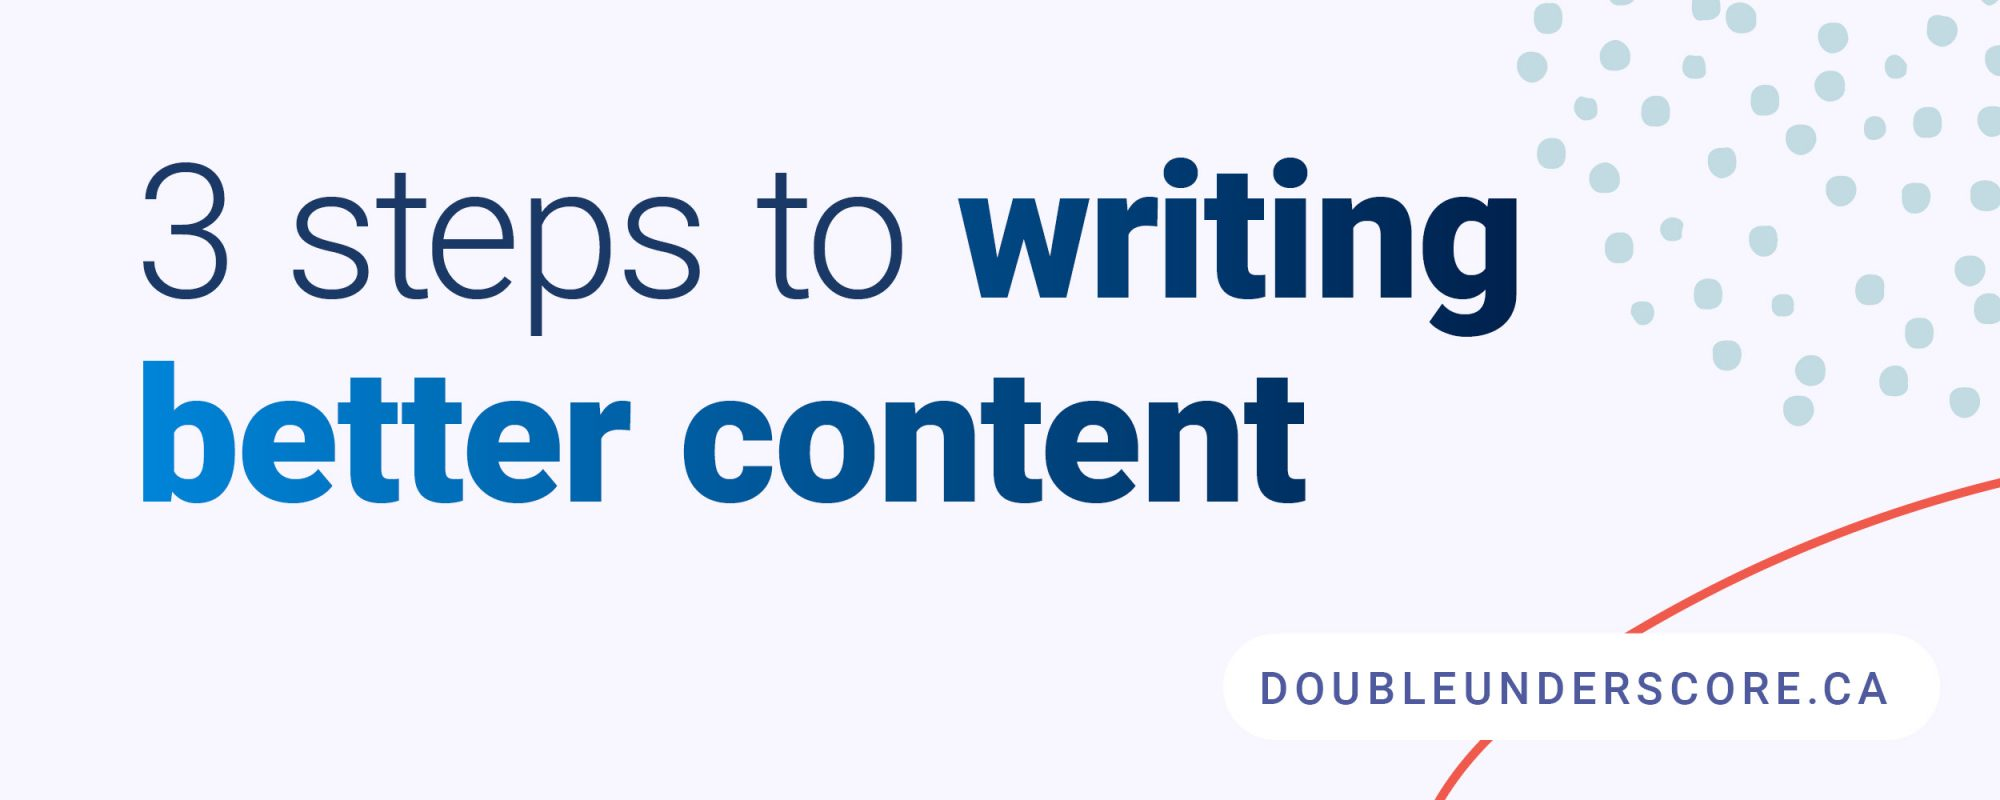 how to write content faster 2 by DoubleUnderscore